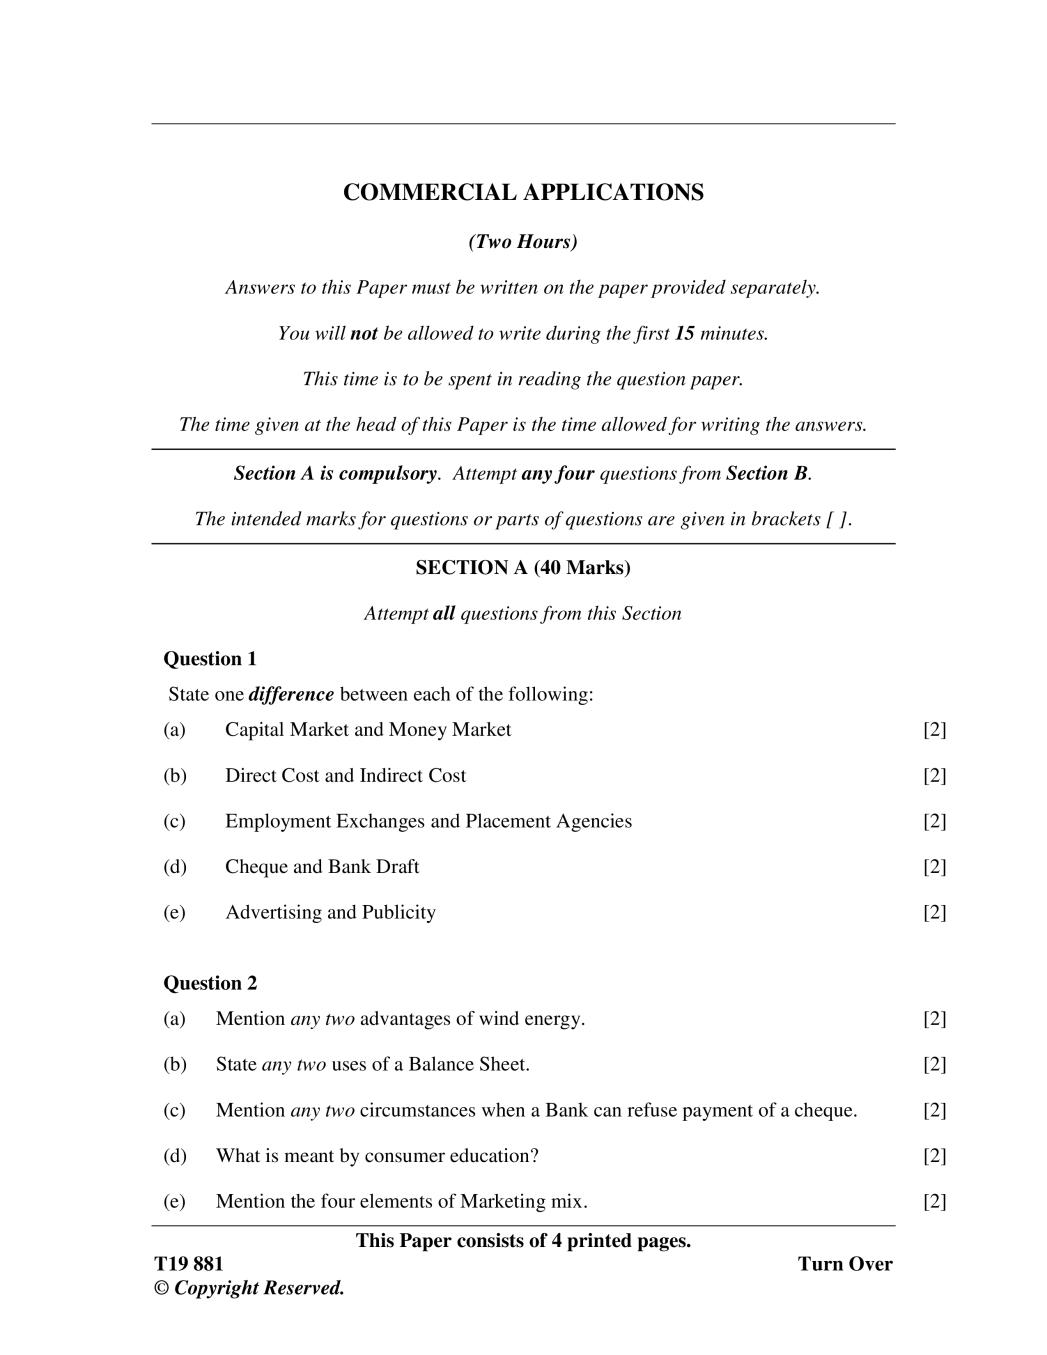 ICSE Class 10 Question Paper 2019 for Commercial Applications  - Page 1